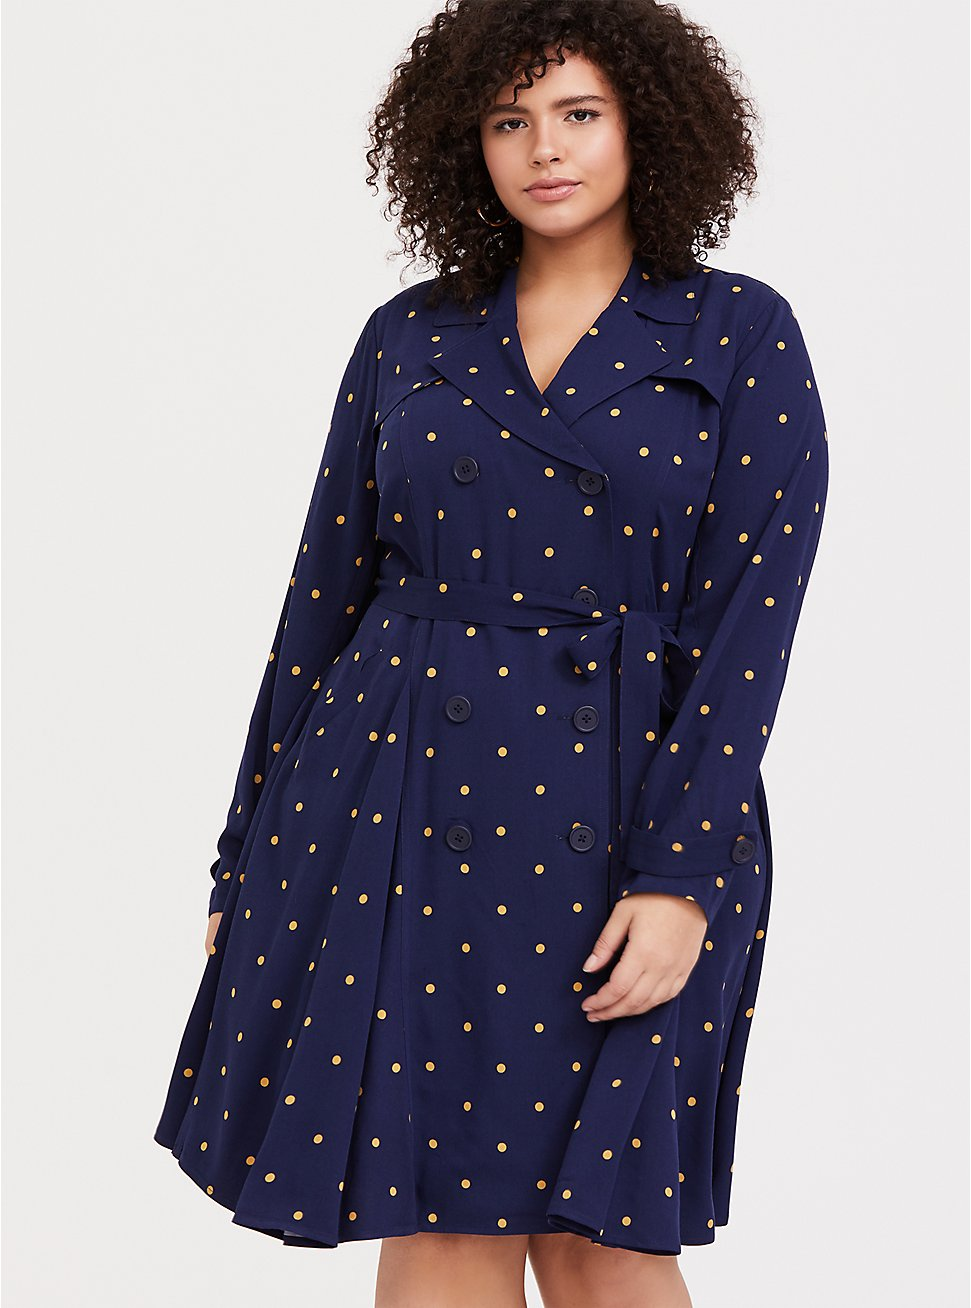 Navy Polka Dot Twill Fit & Flare Trench Coat, DOT STRIPE-NAVY, hi-res